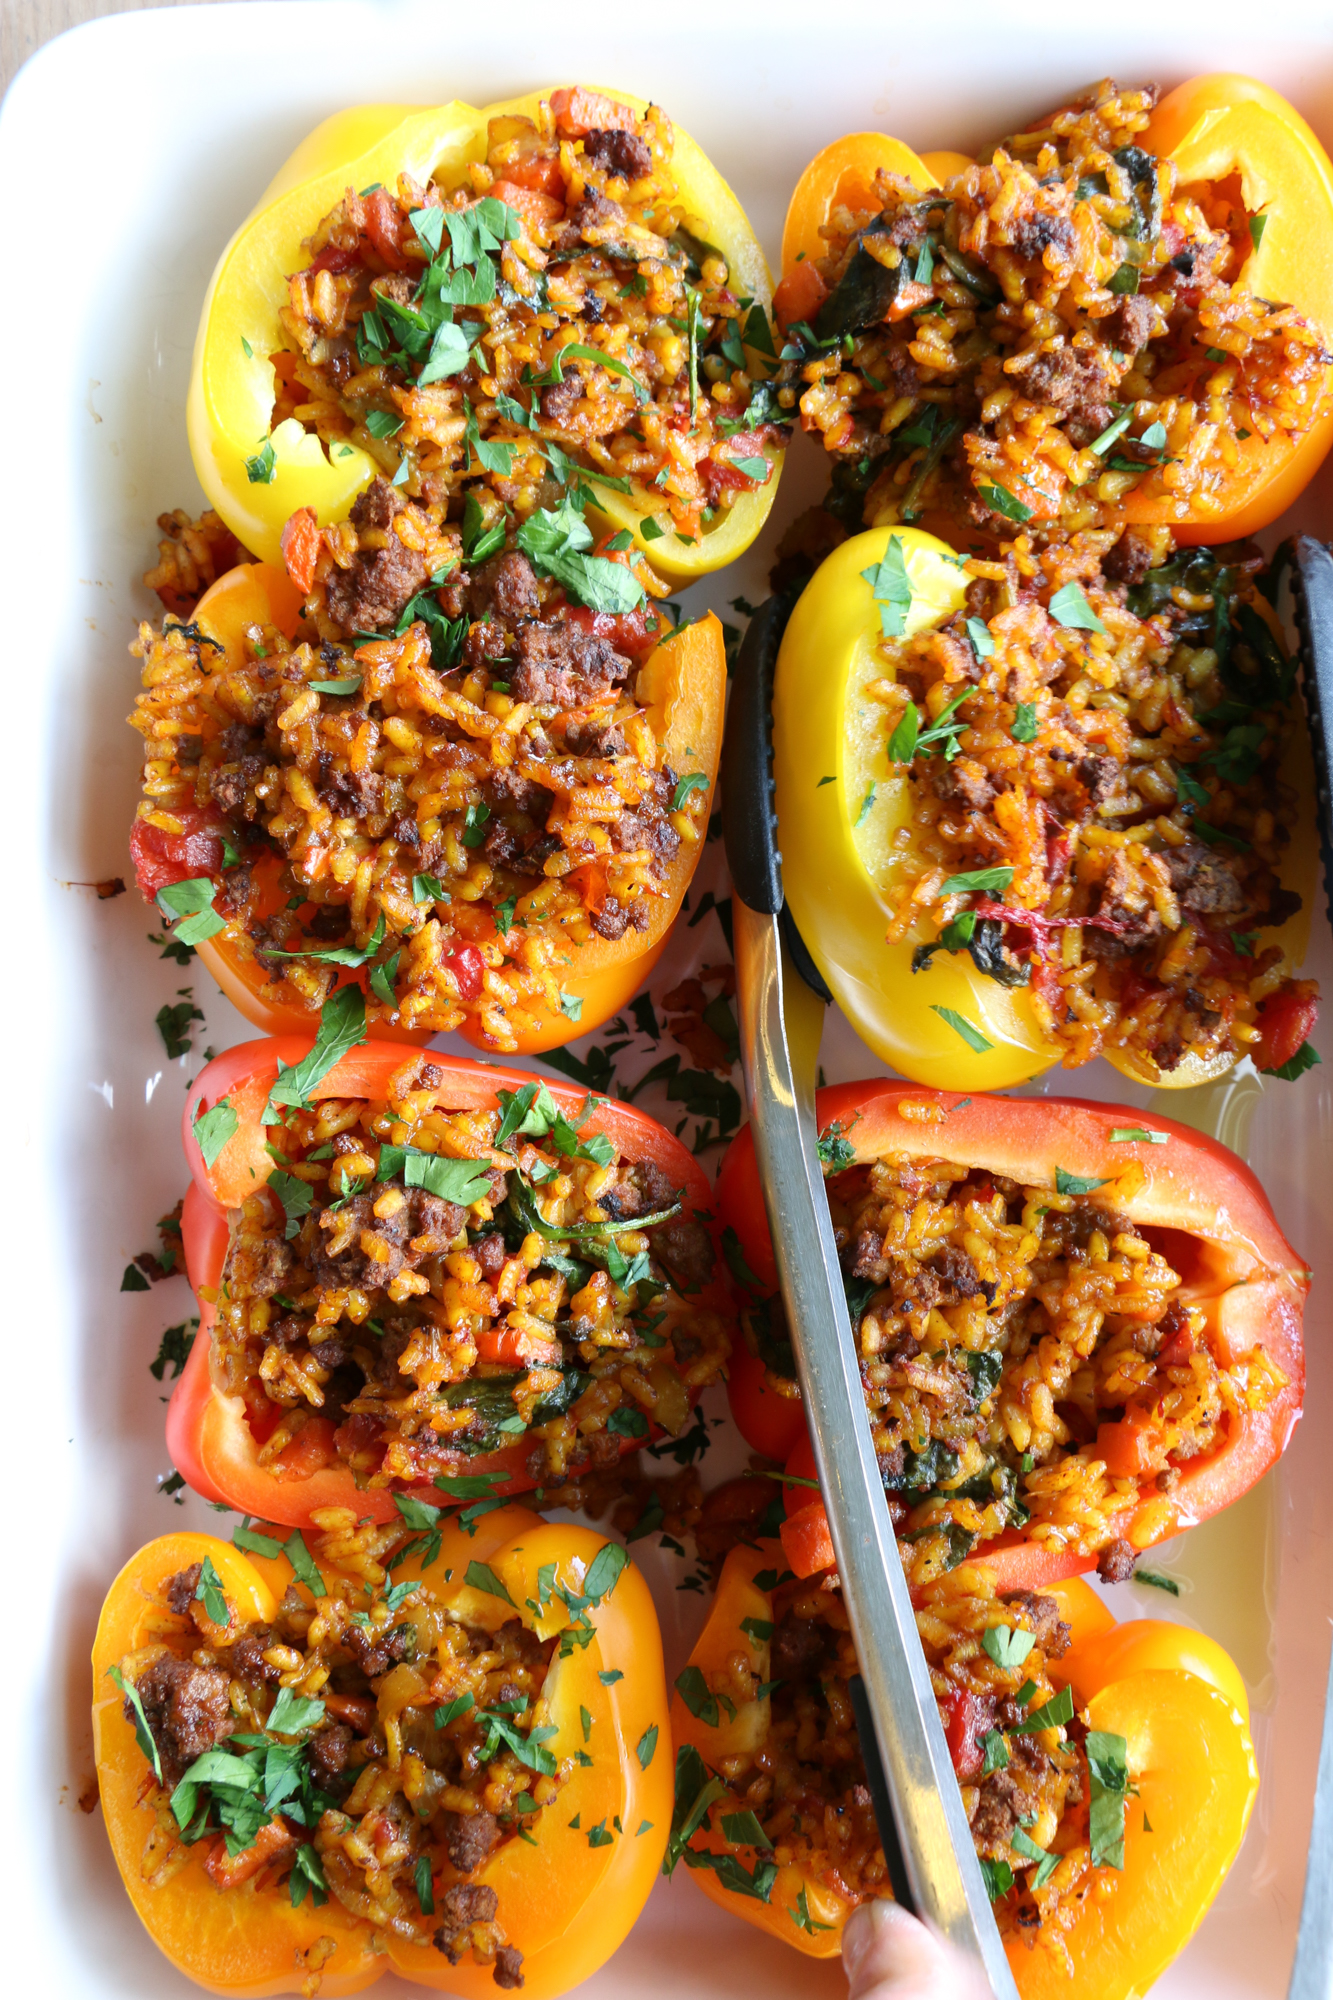 Stuffed Peppers with Beef Paella! Filling, delicious and nutritious, bell peppers are a great vehicle for pasta, rice, vegetables and more!